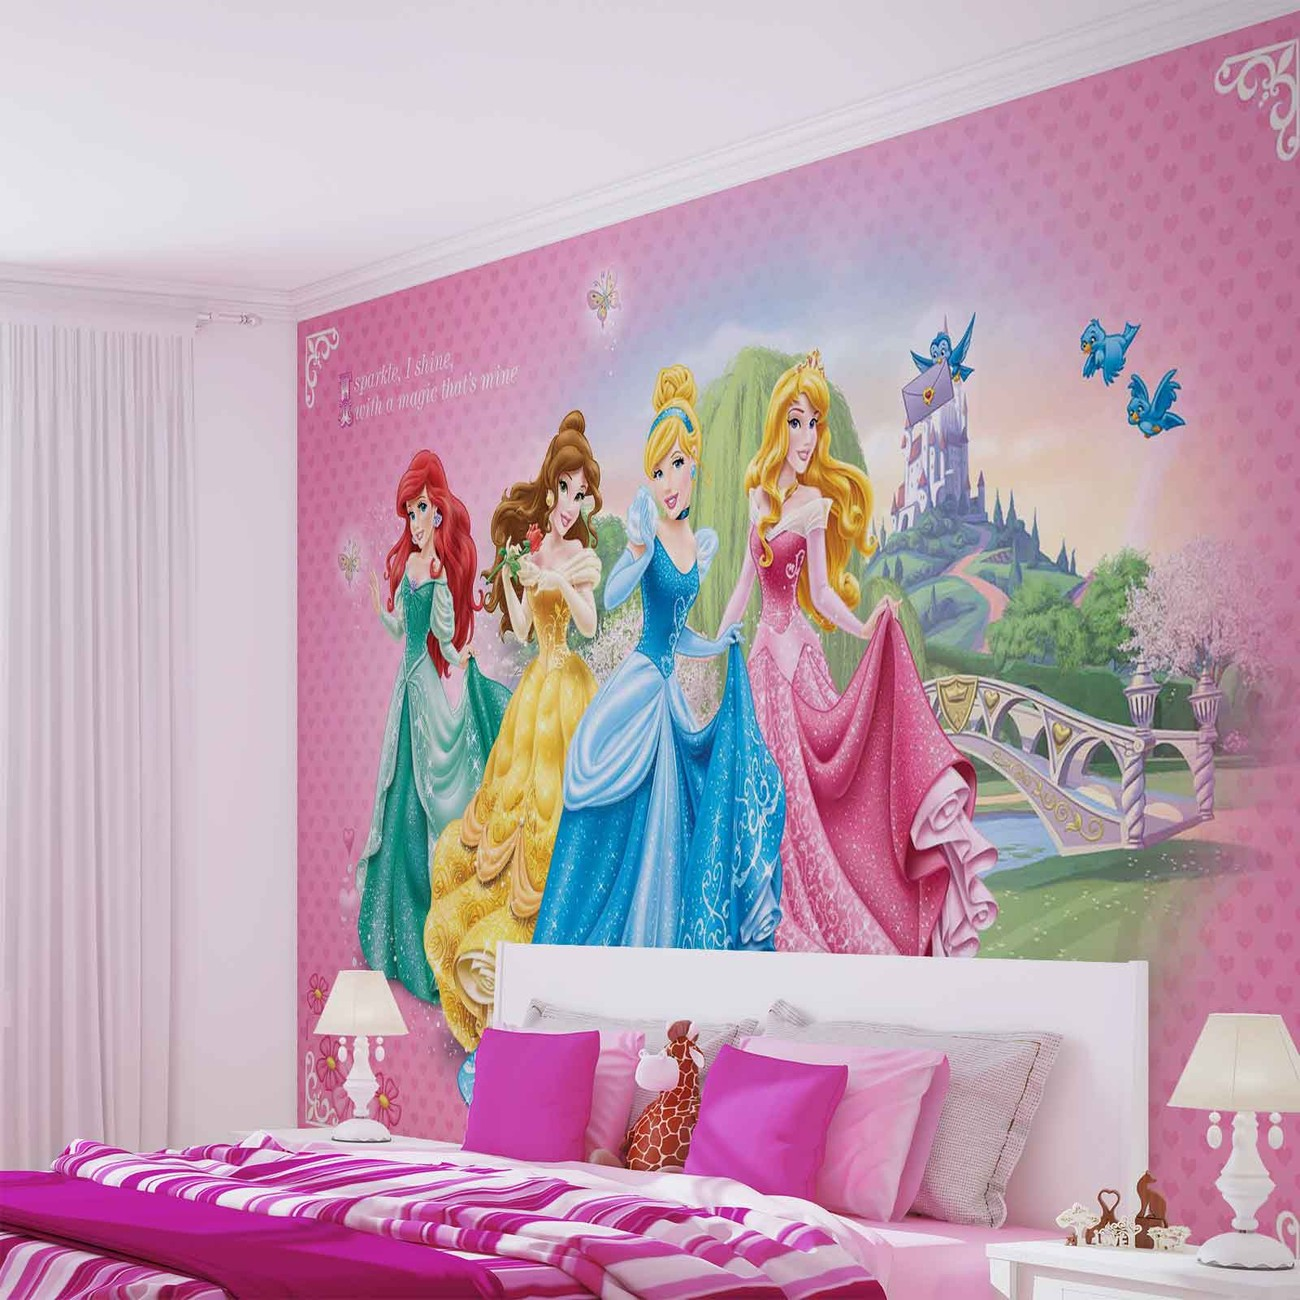 Disney princesses cinderella belle wall paper mural buy for Disney princess wall mural tesco